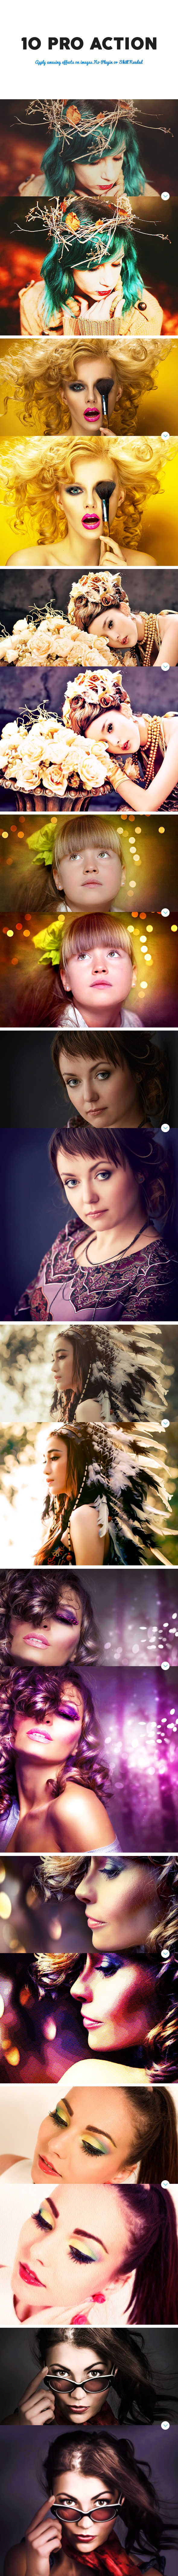 10 Pro Photoshop Action 2 - Photo Effects Actions